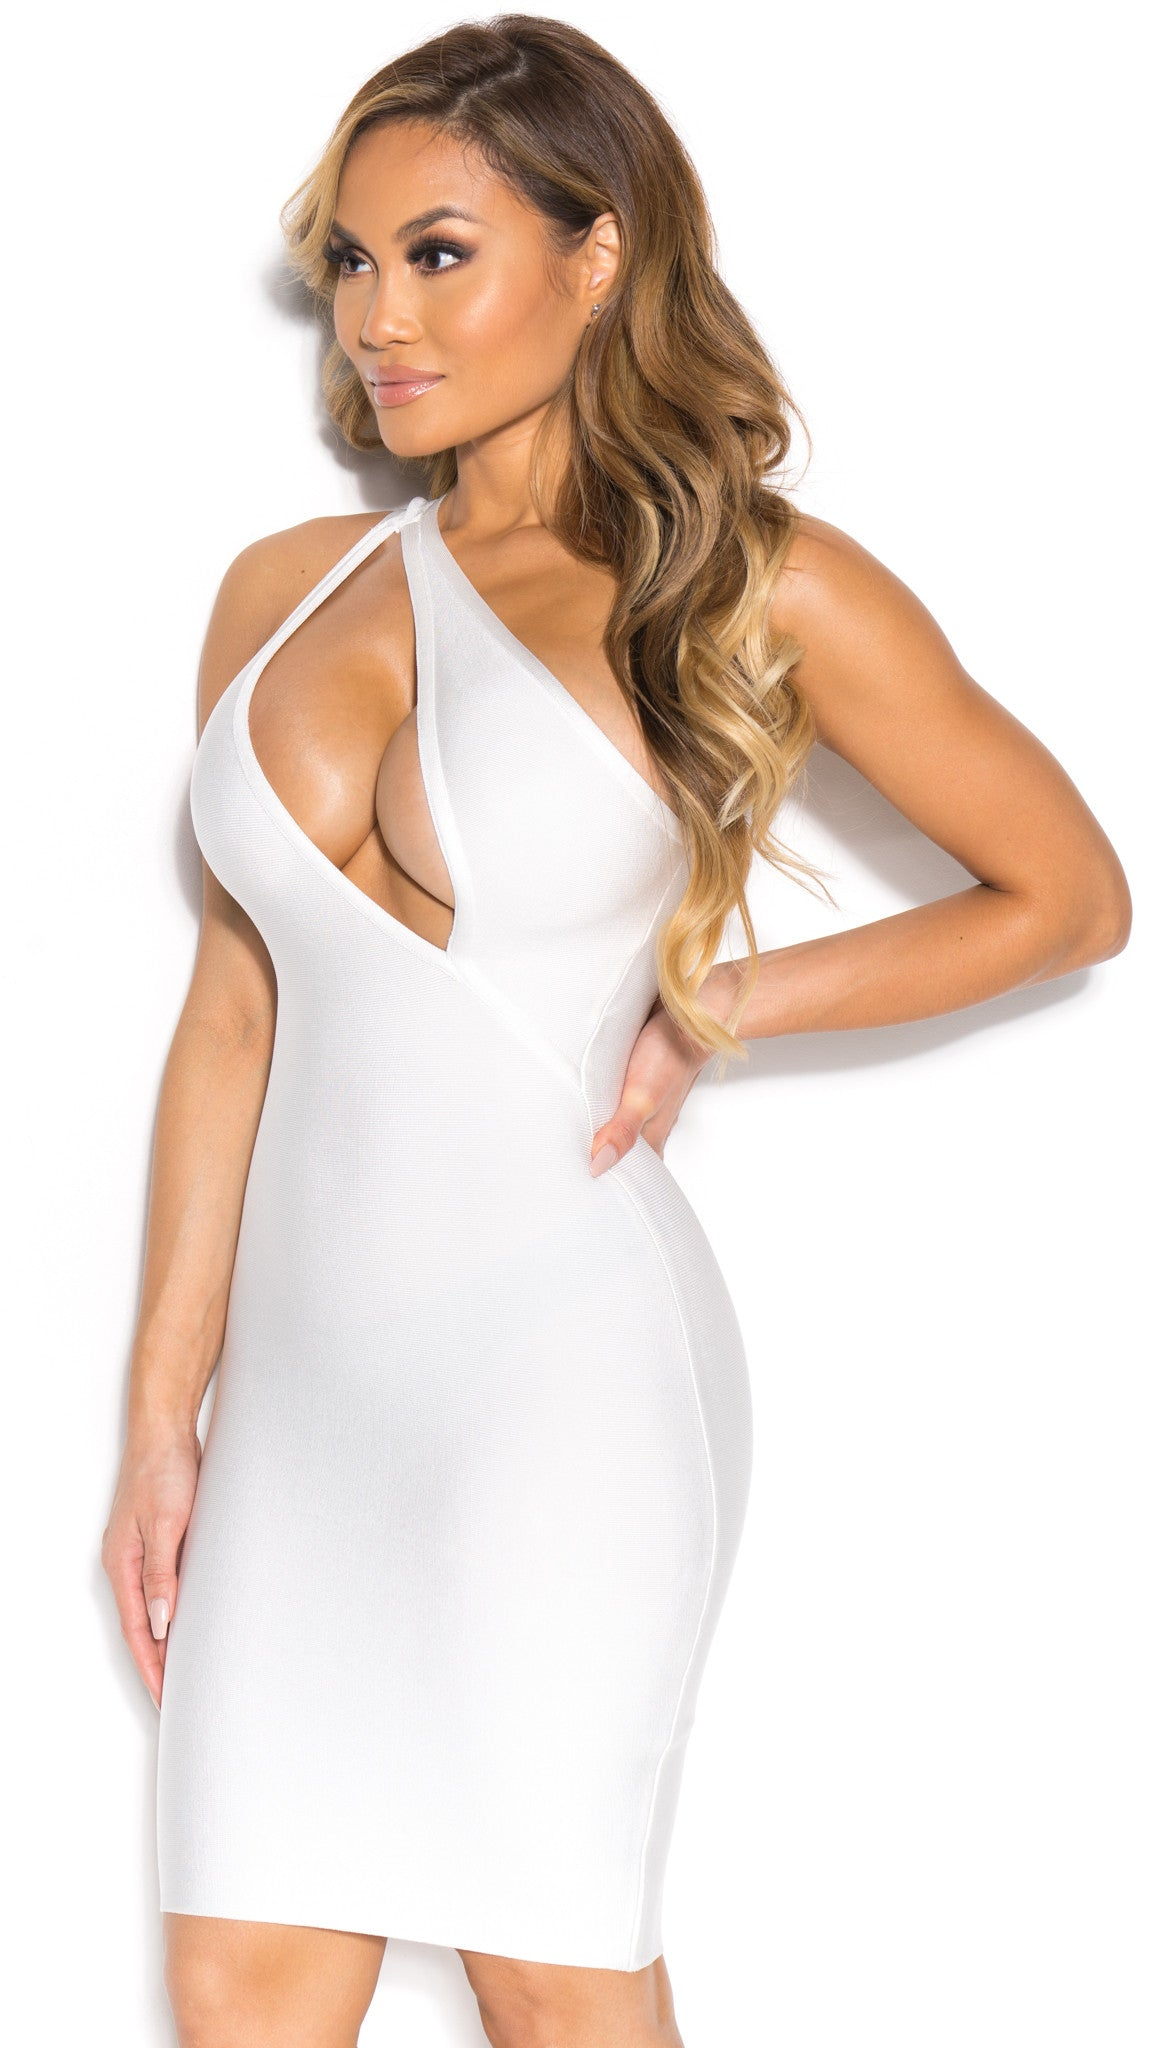 LILY BANDAGE DRESS IN WHITE